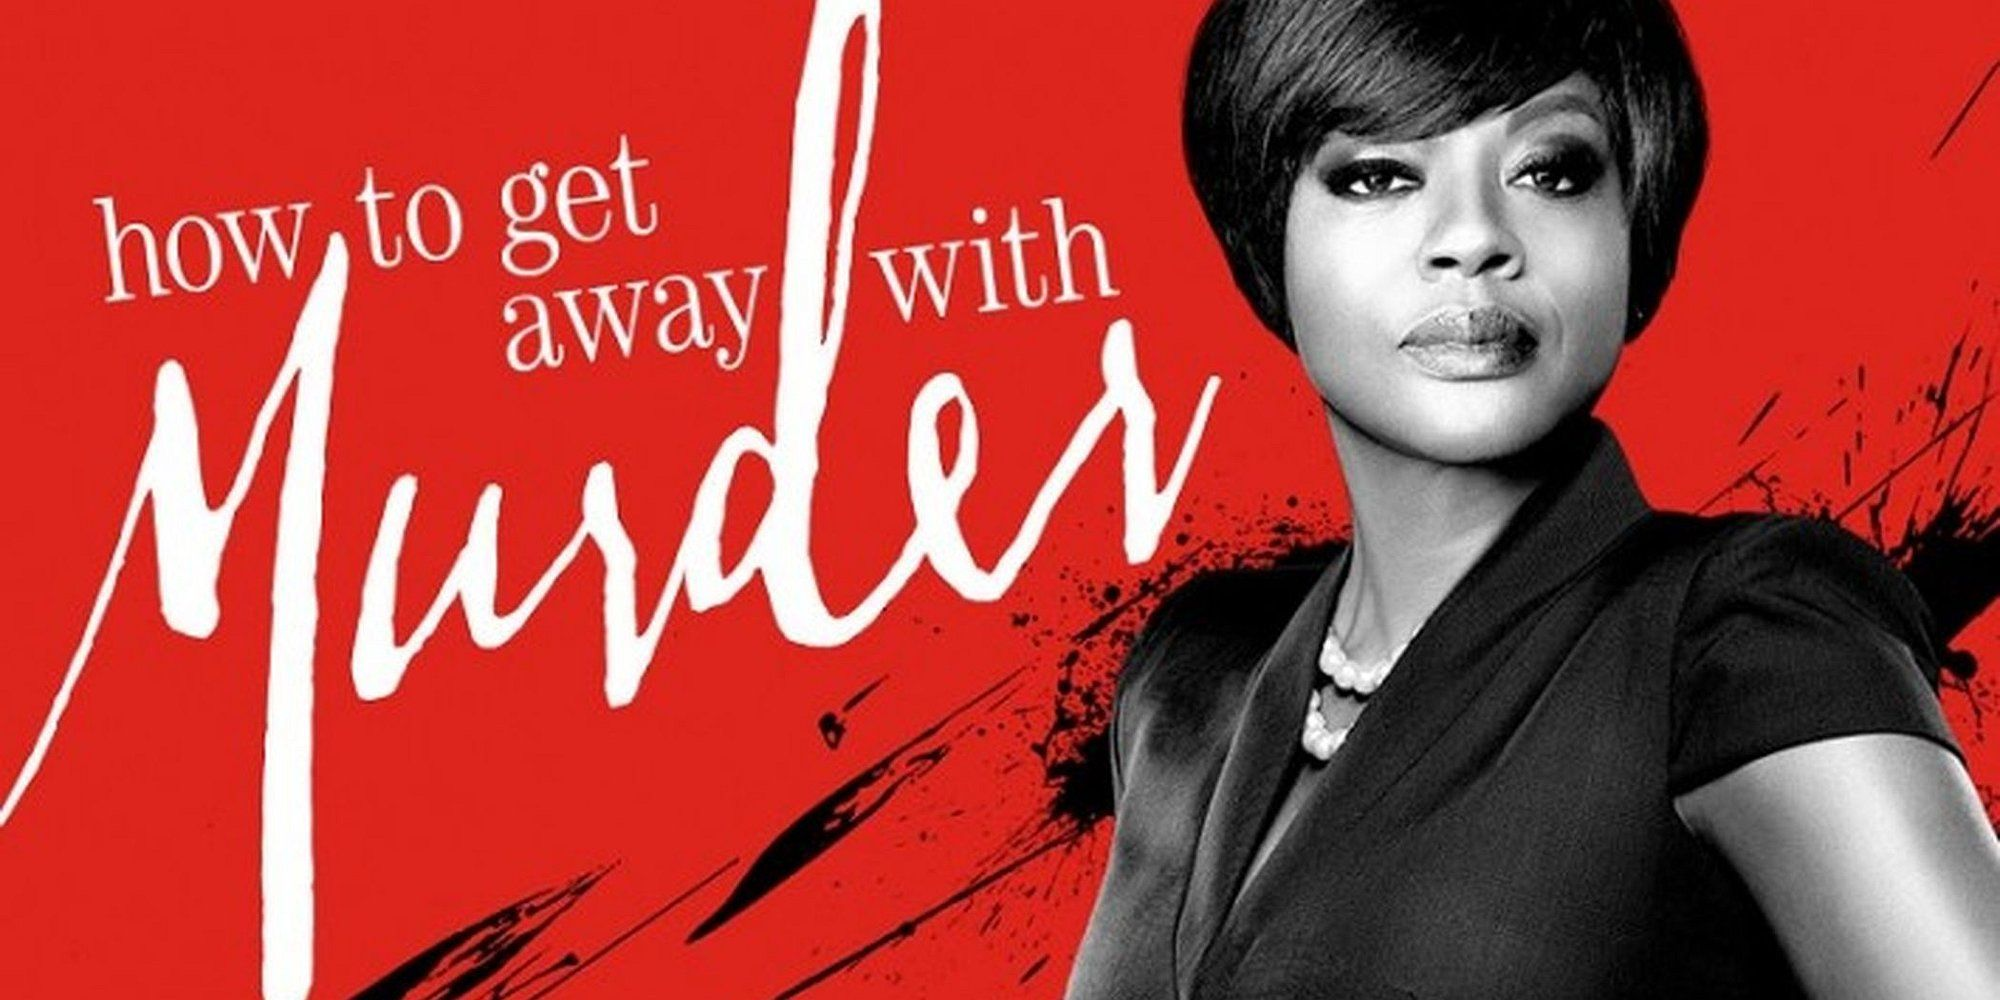 Part 1: How to get away with murder in Singapore